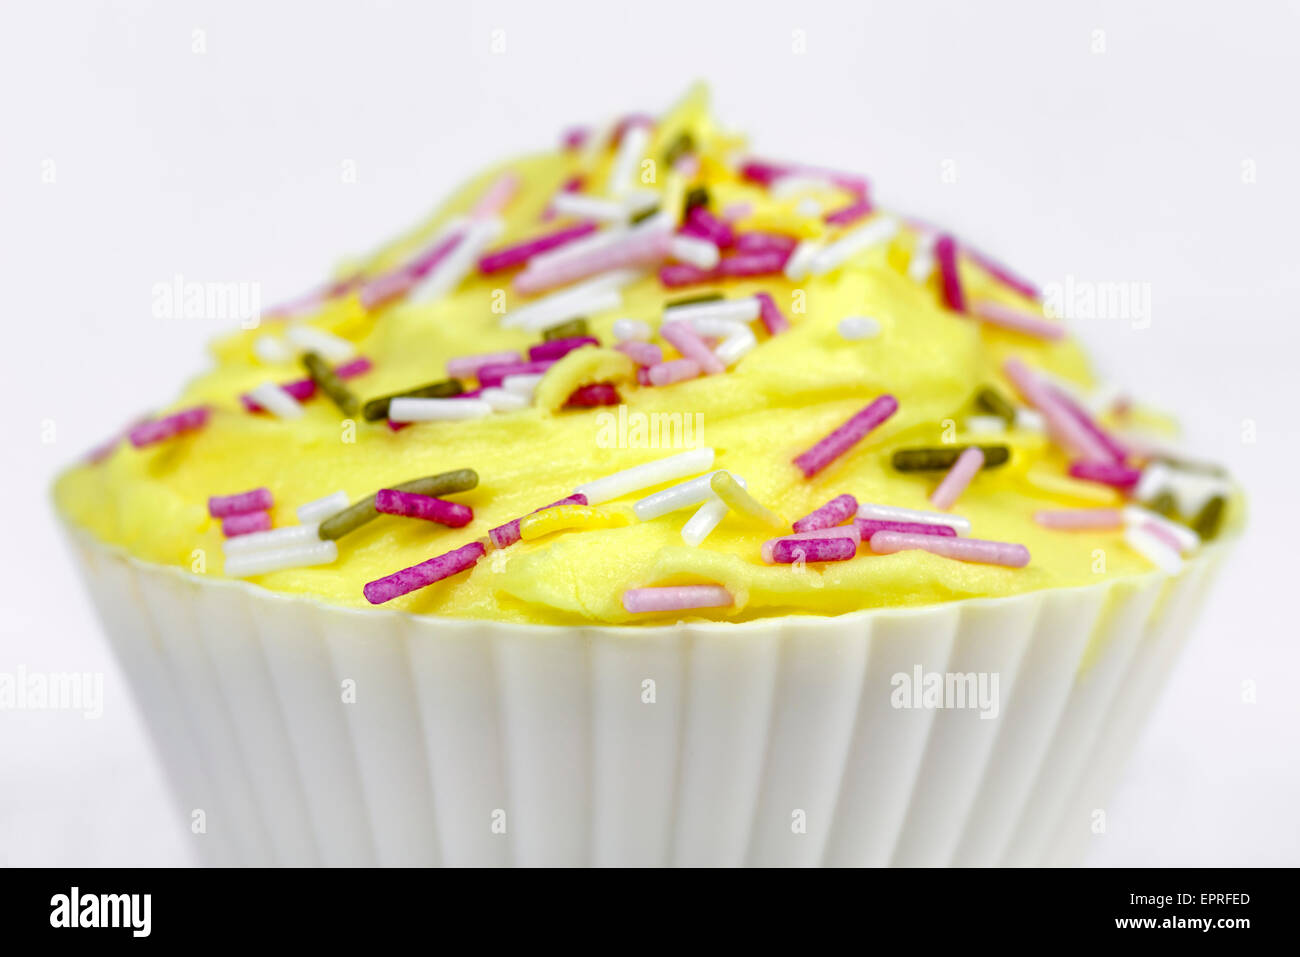 Pretty colourfully decorated cupcake or fairy cake with yellow icing and coloured sprinkles on a white background - Stock Image